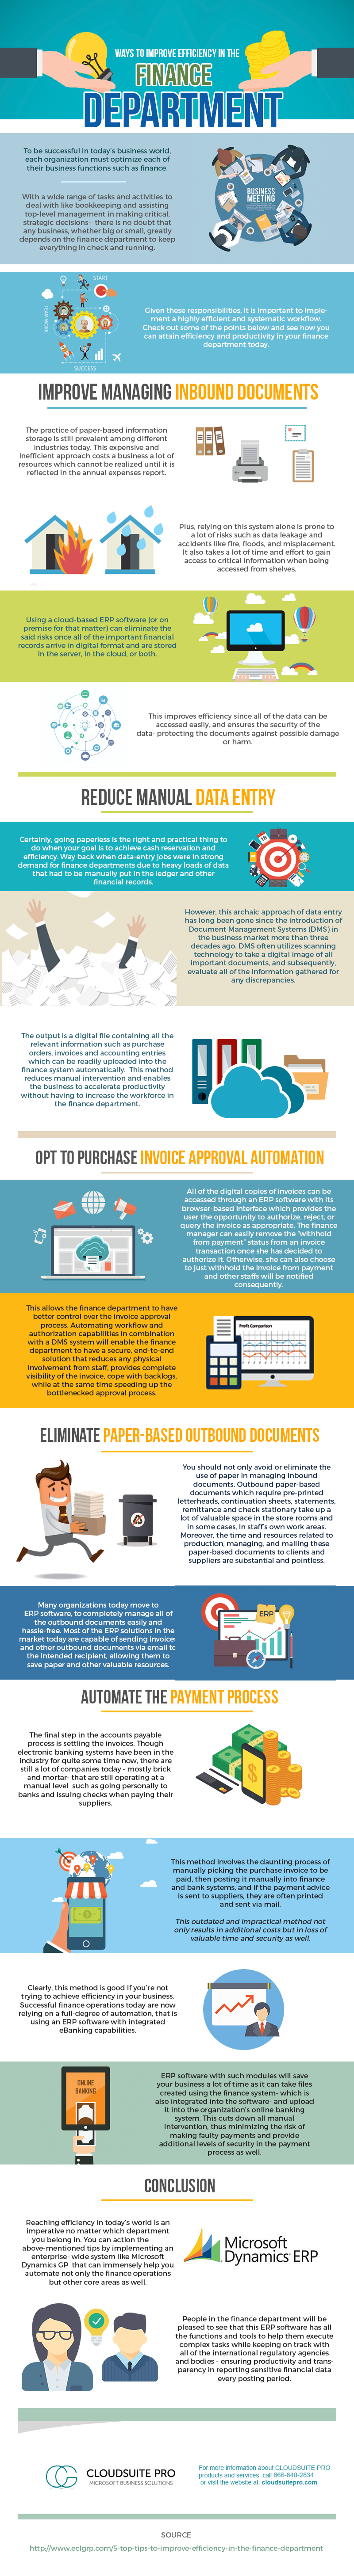 Make Finance and Accounting Department More Efficient and Productive - Infographic